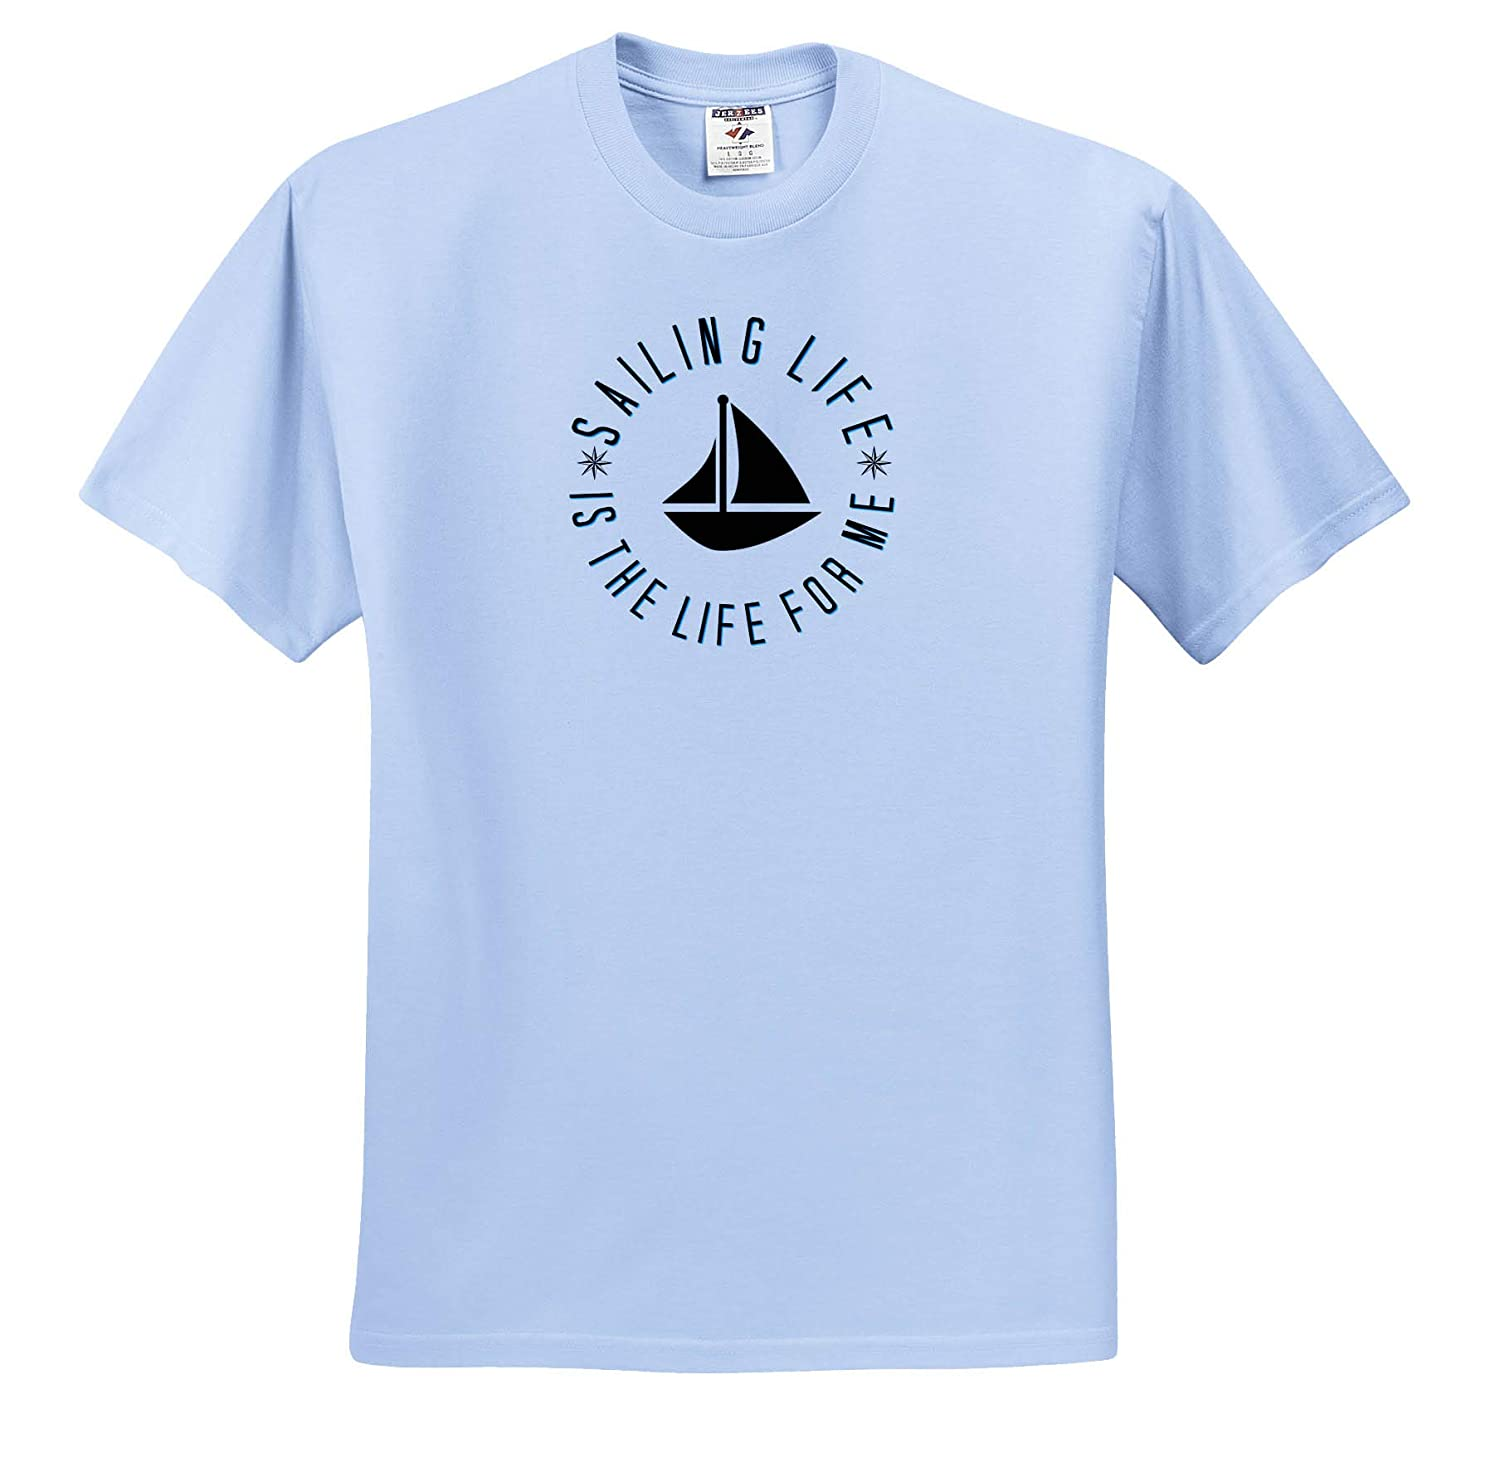 3dRose Carrie Merchant Image of Sailing Life is The Life for Me ts/_309902 Adult T-Shirt XL